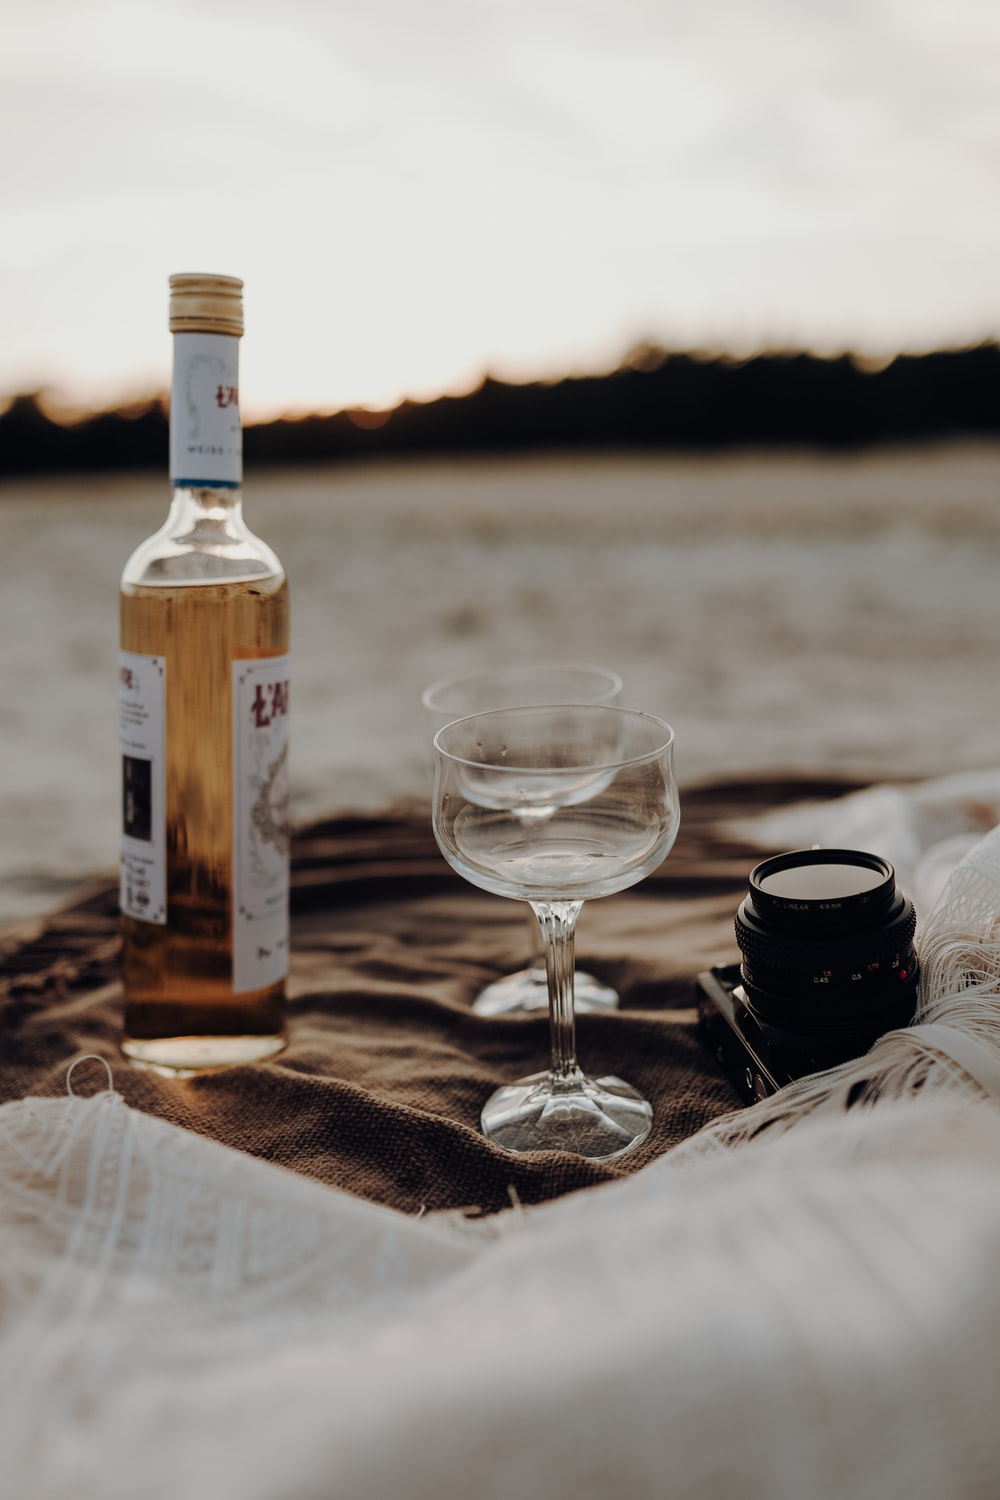 clear wine glass beside black ceramic mug on brown wooden table